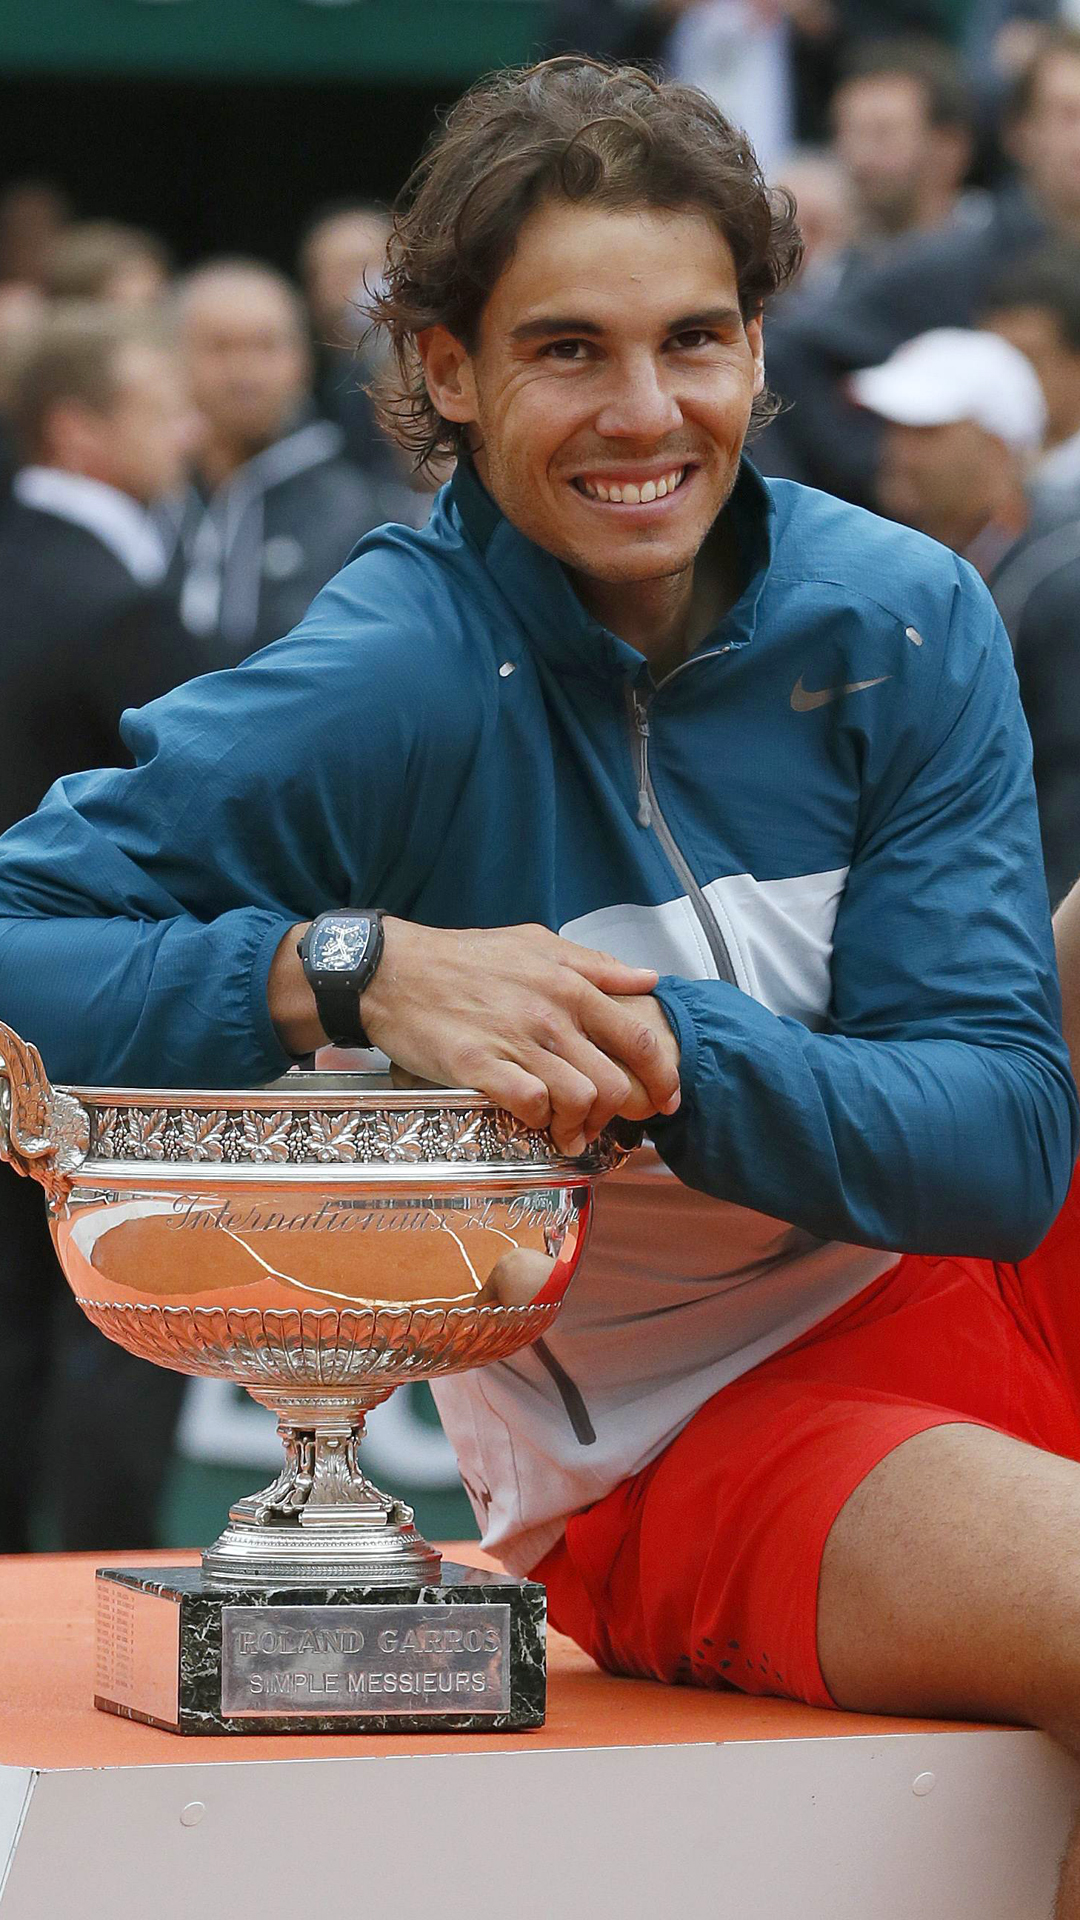 New Rafael Nadal Wallpapers Download High Quality HD Images 1080x1920